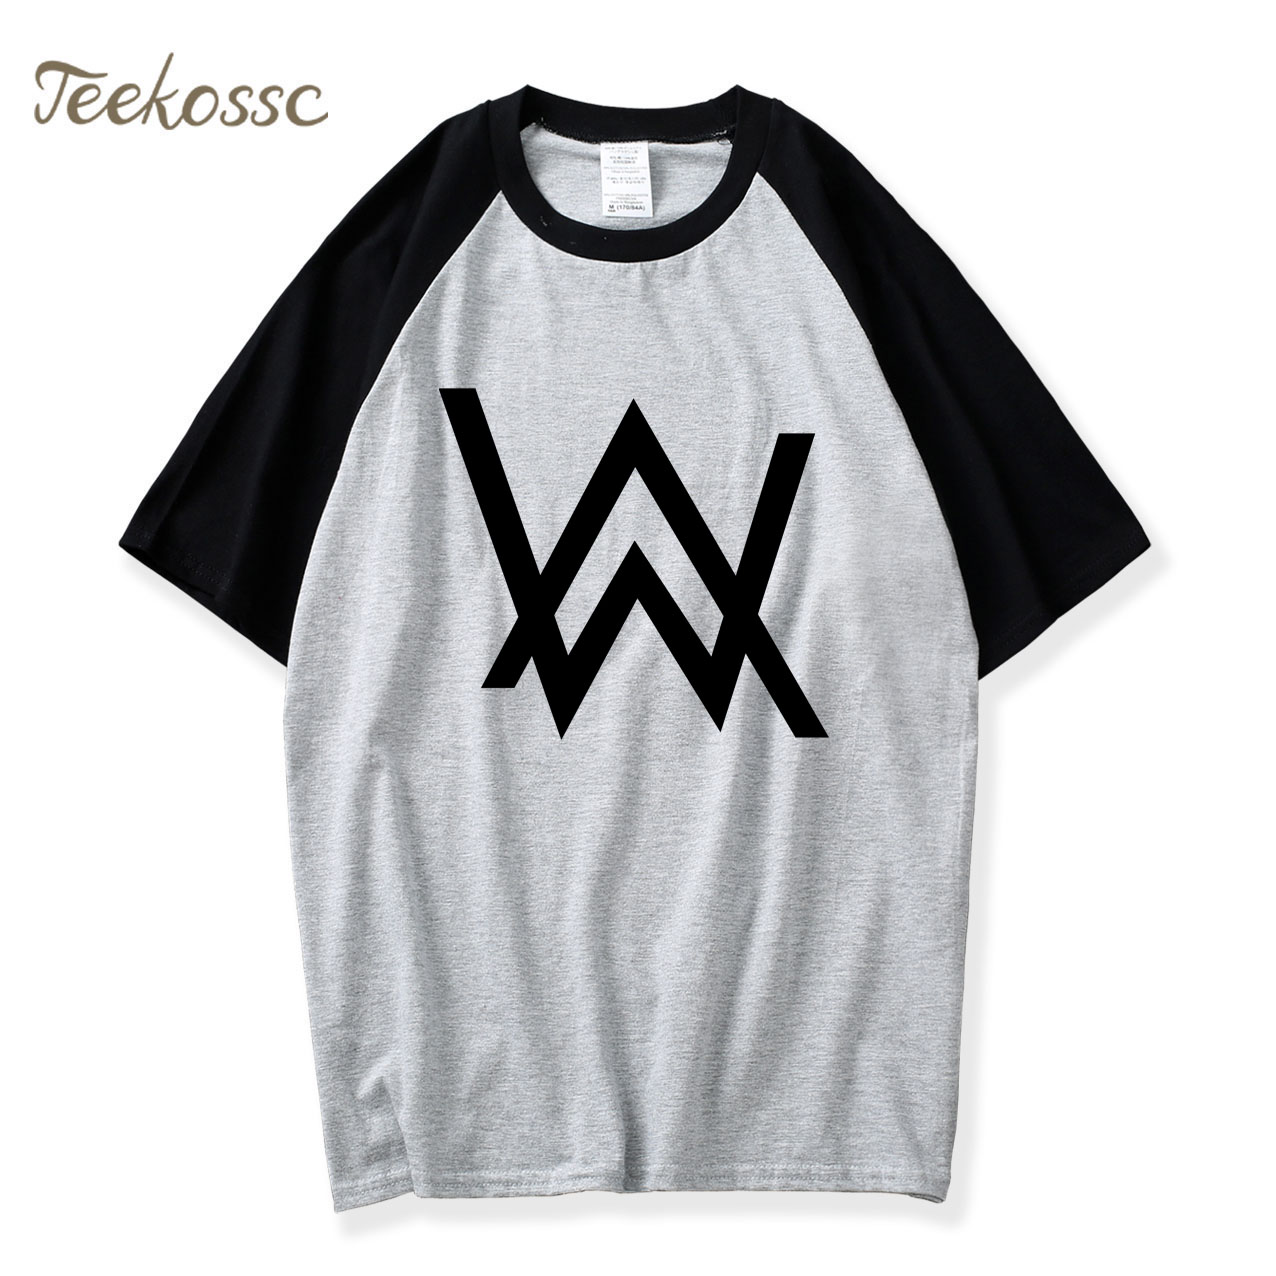 Music T Shirt 2018 New Fashion Summer Raglan Sleeve Black Gray Top Tee Male Men 100% Cotton Men's Homme T-Shirt Camiseta Tshirts